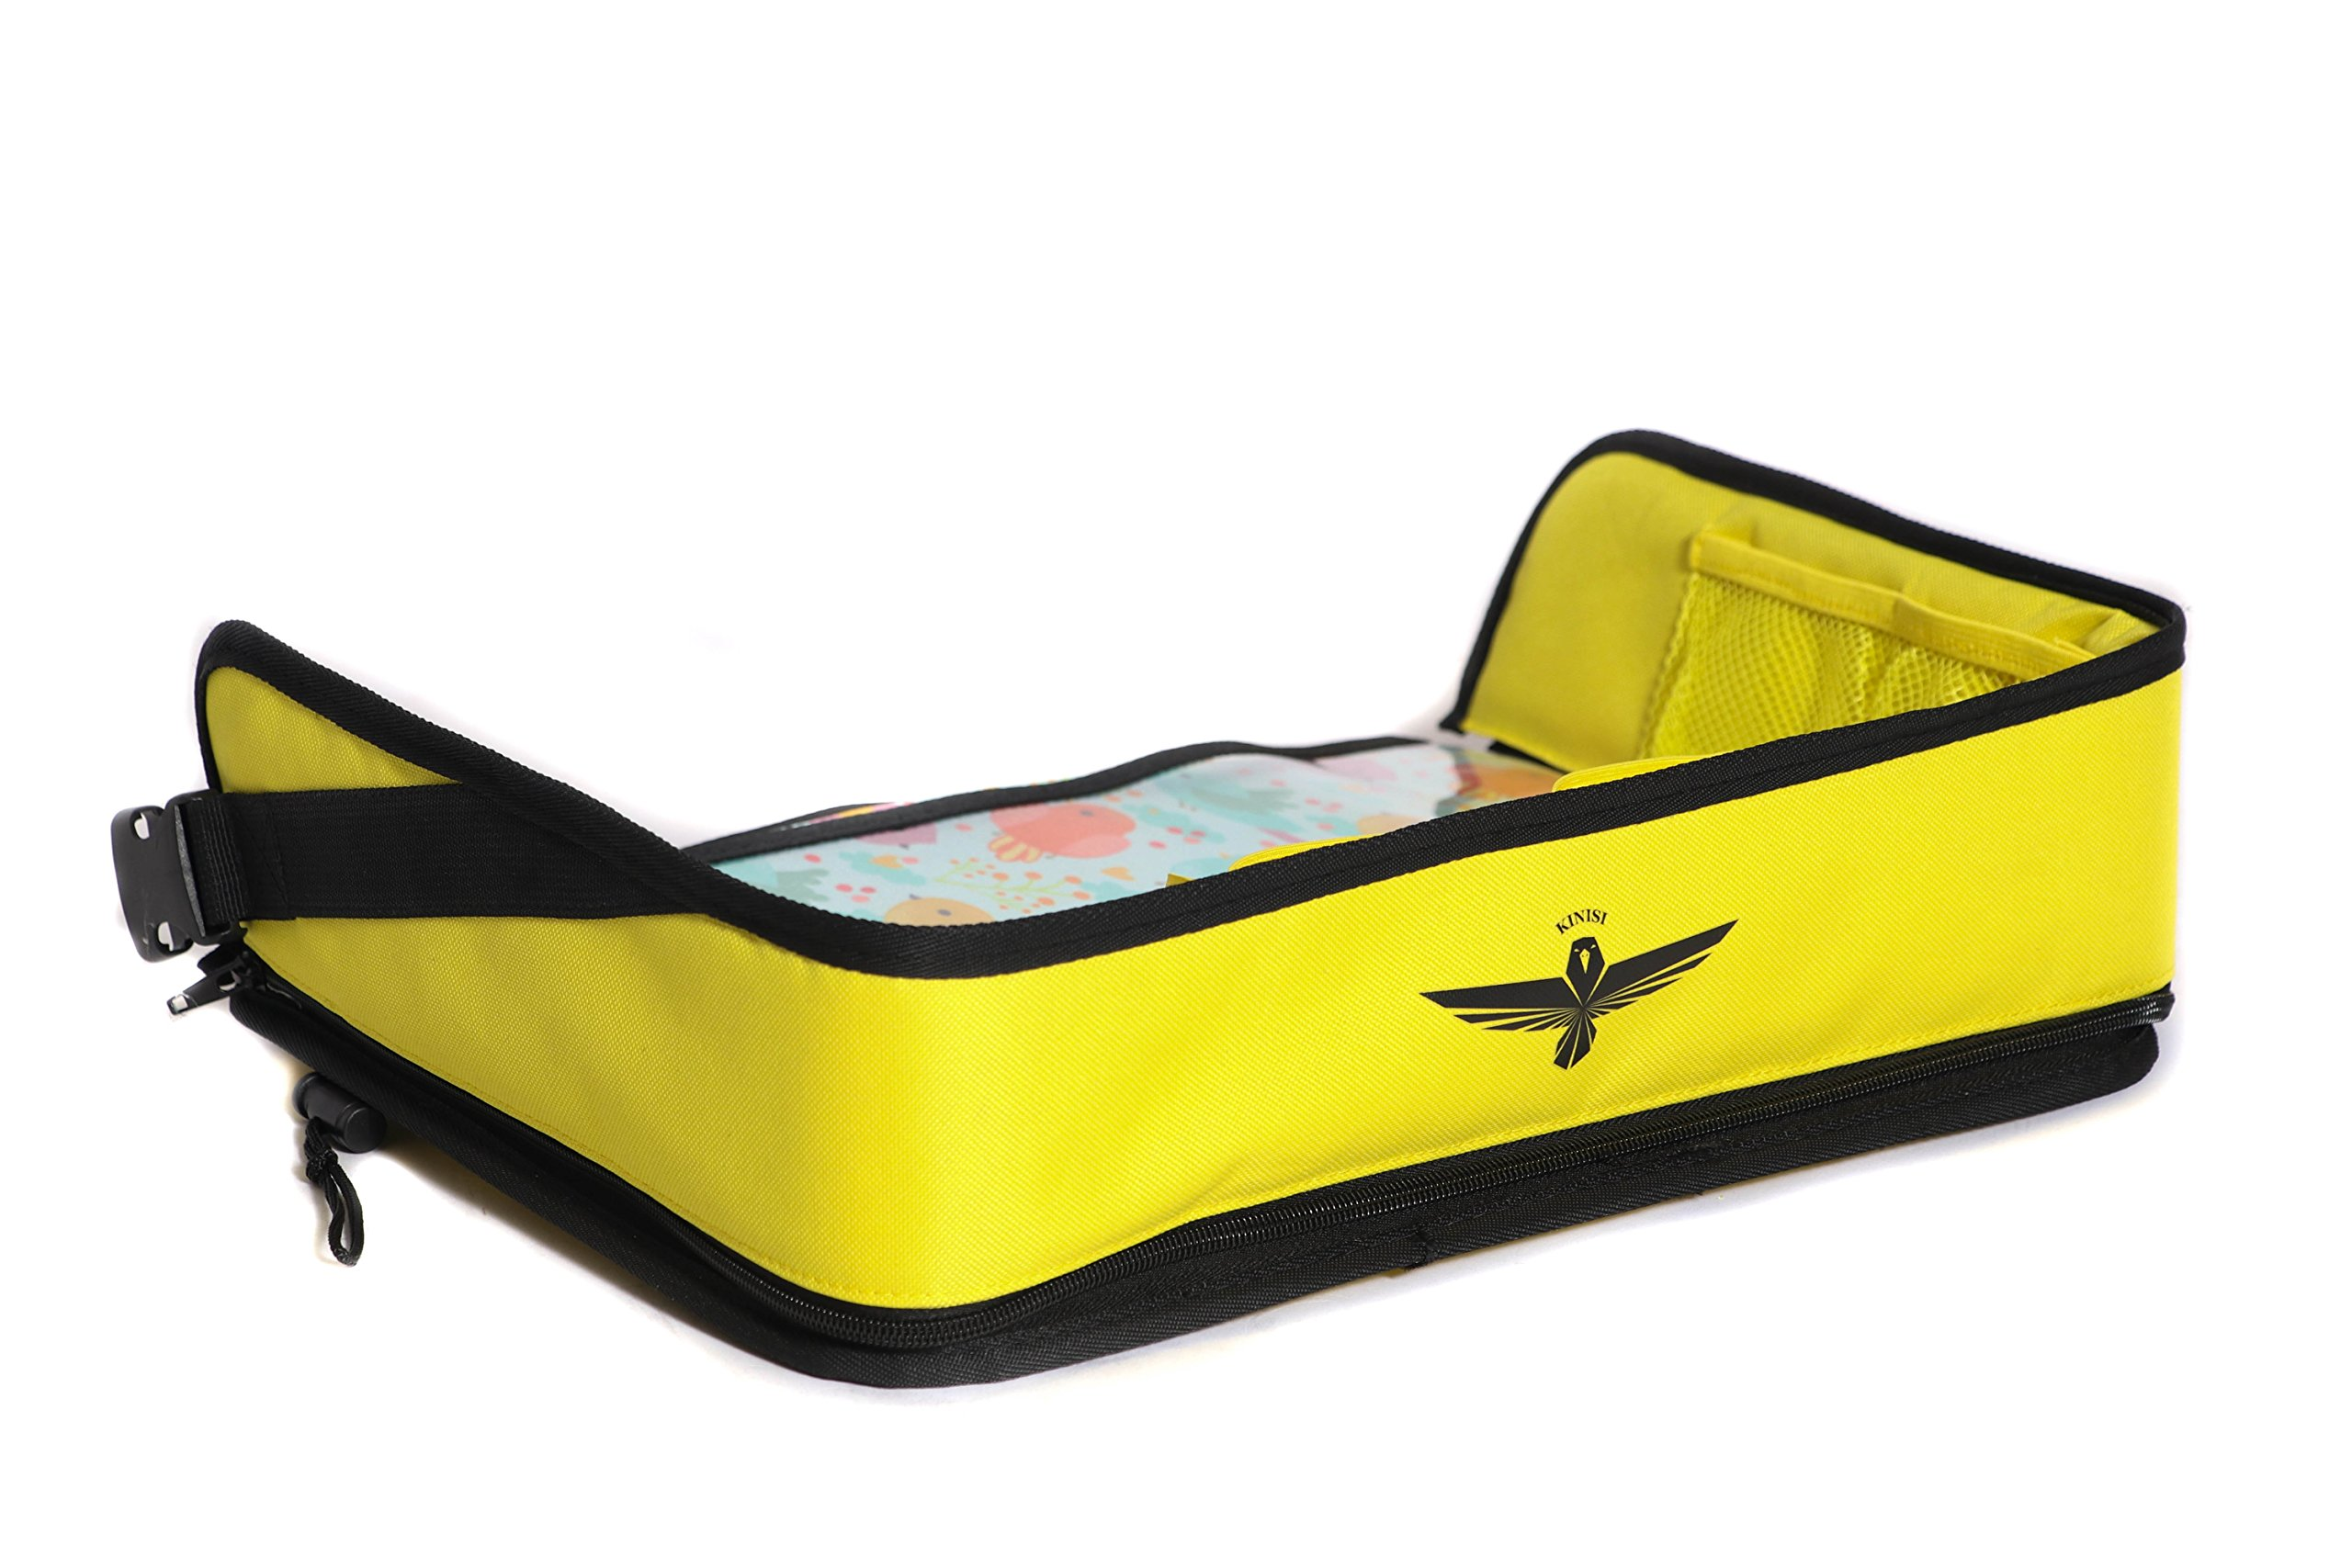 Kids Travel Tray | Premium Waterproof Dry Erase Surface for Snacks and Activity | Child Lap Seat Tray for Car and Airplane | Great for Kid Boys Girls and Toddlers